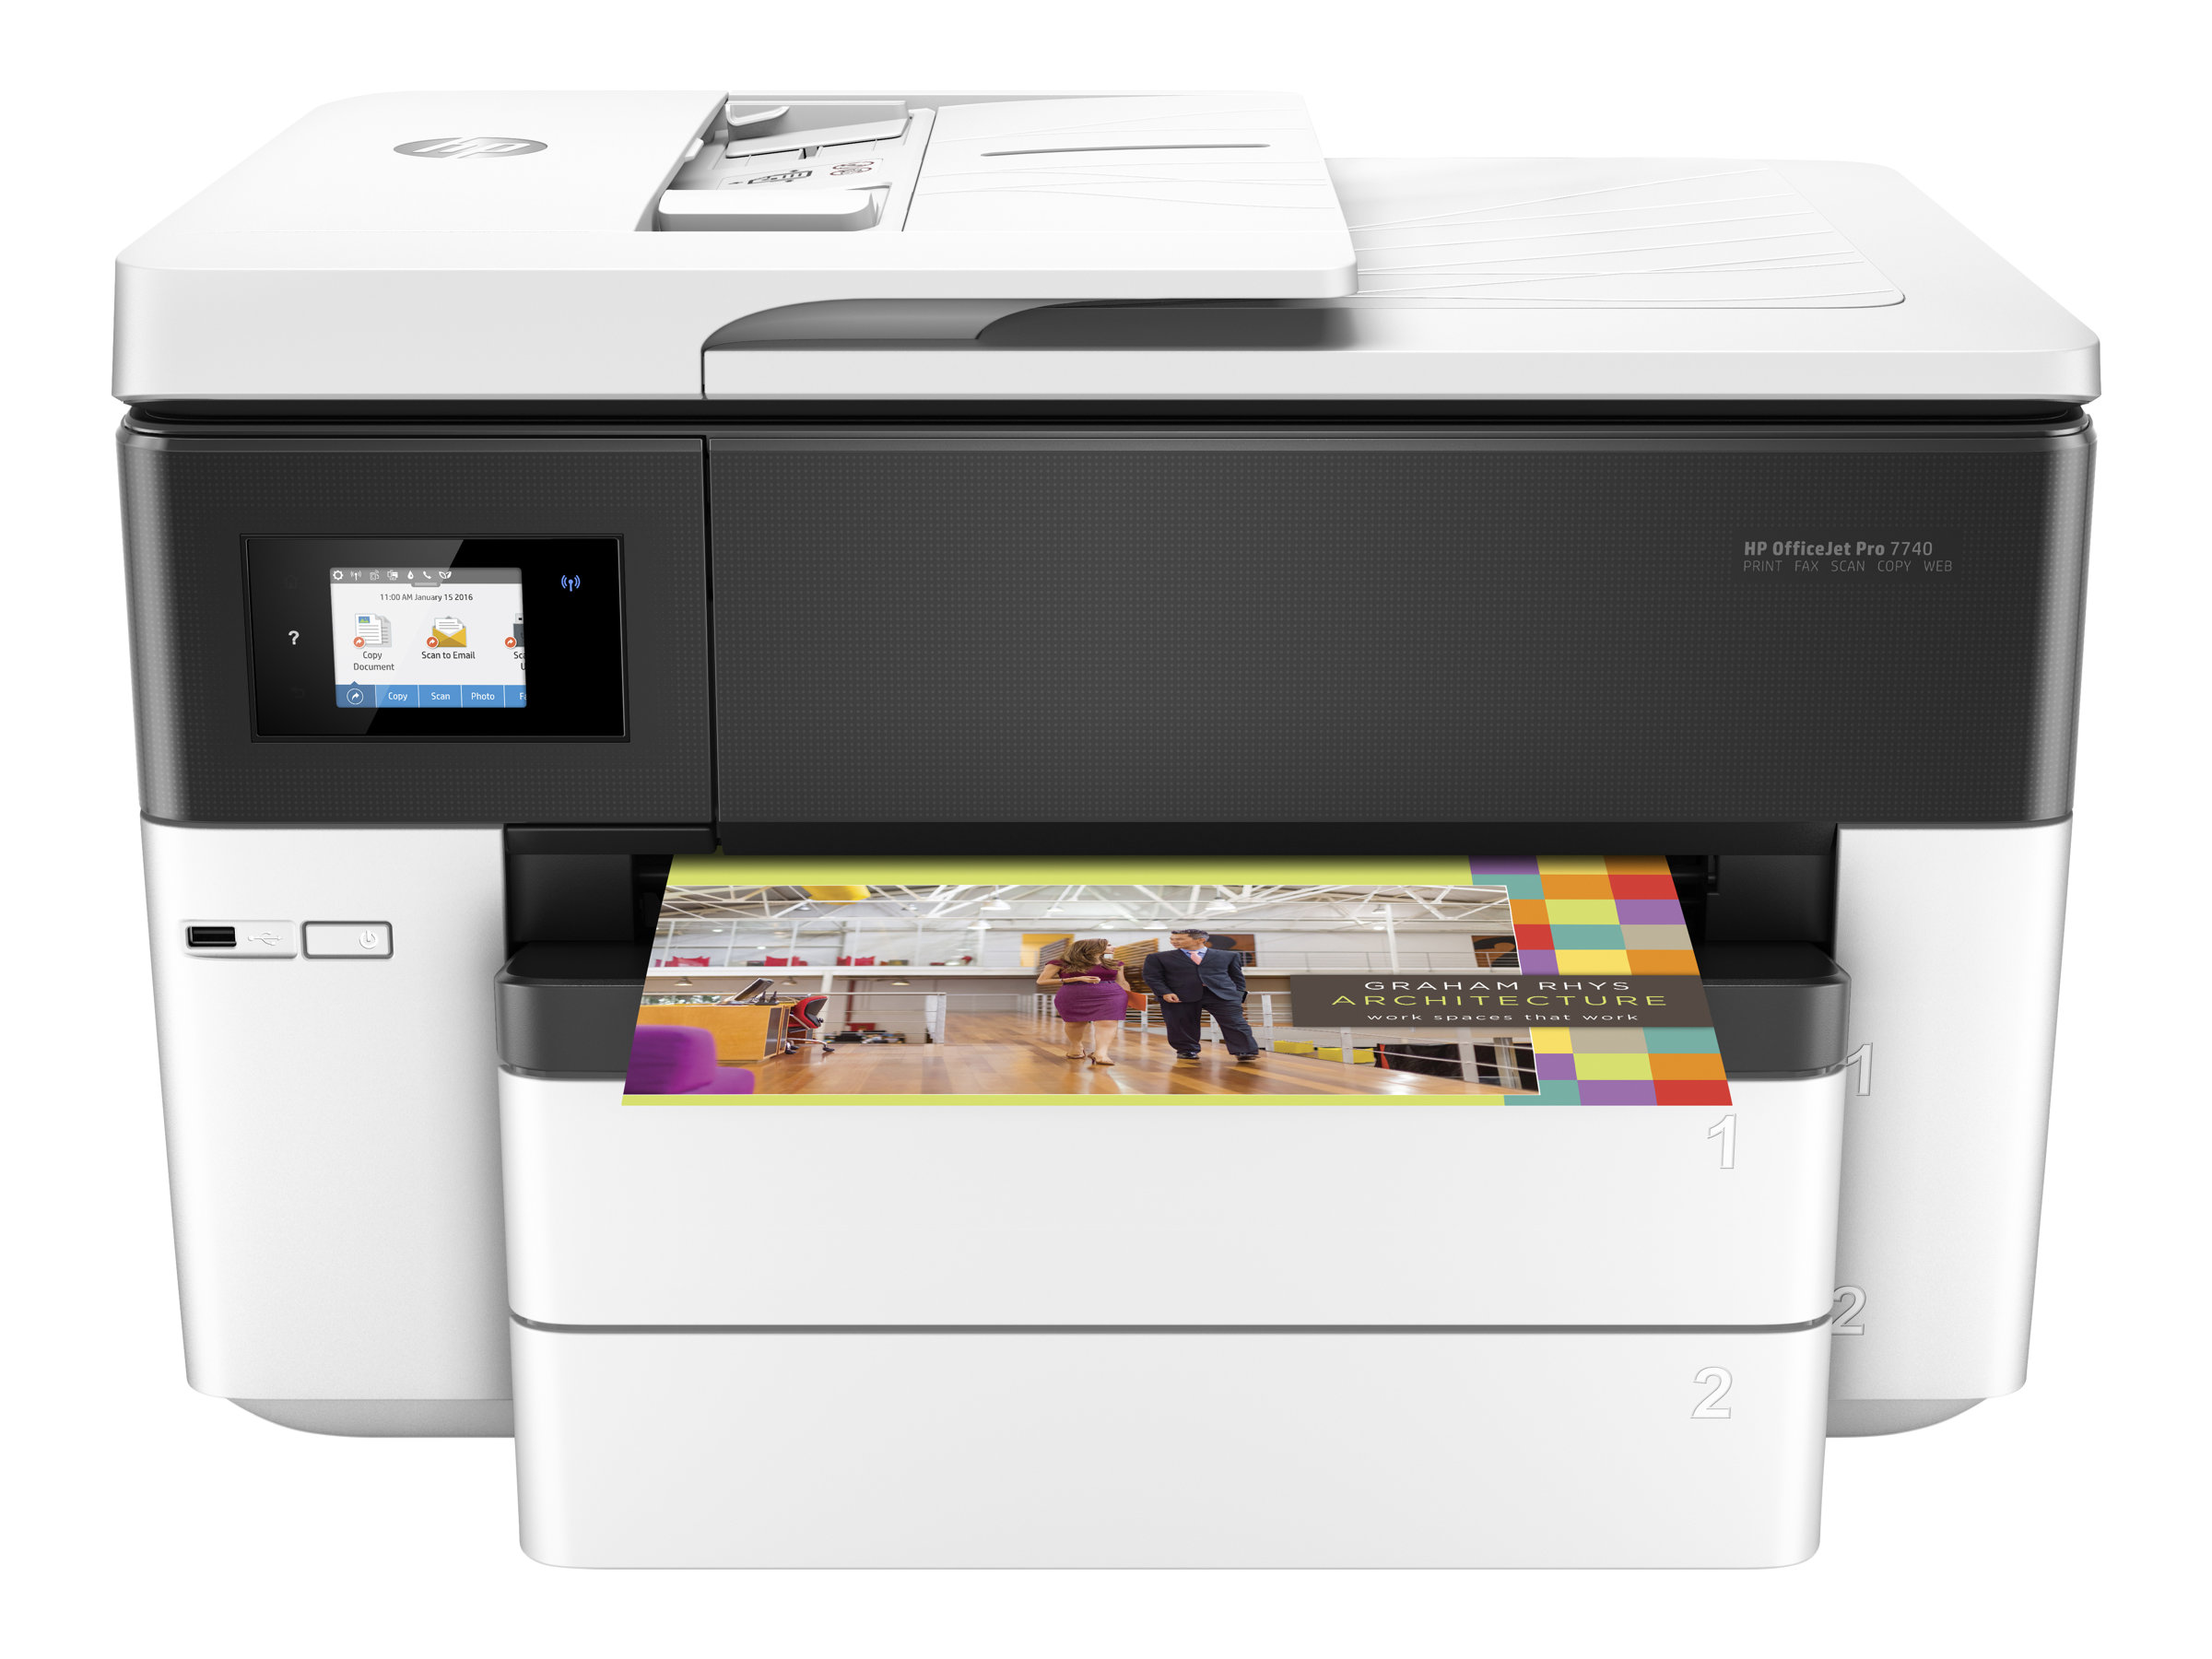 Image for Hp Officejet Pro 7740 All-In-One - Multifunction Printer (Color) from Circuit City